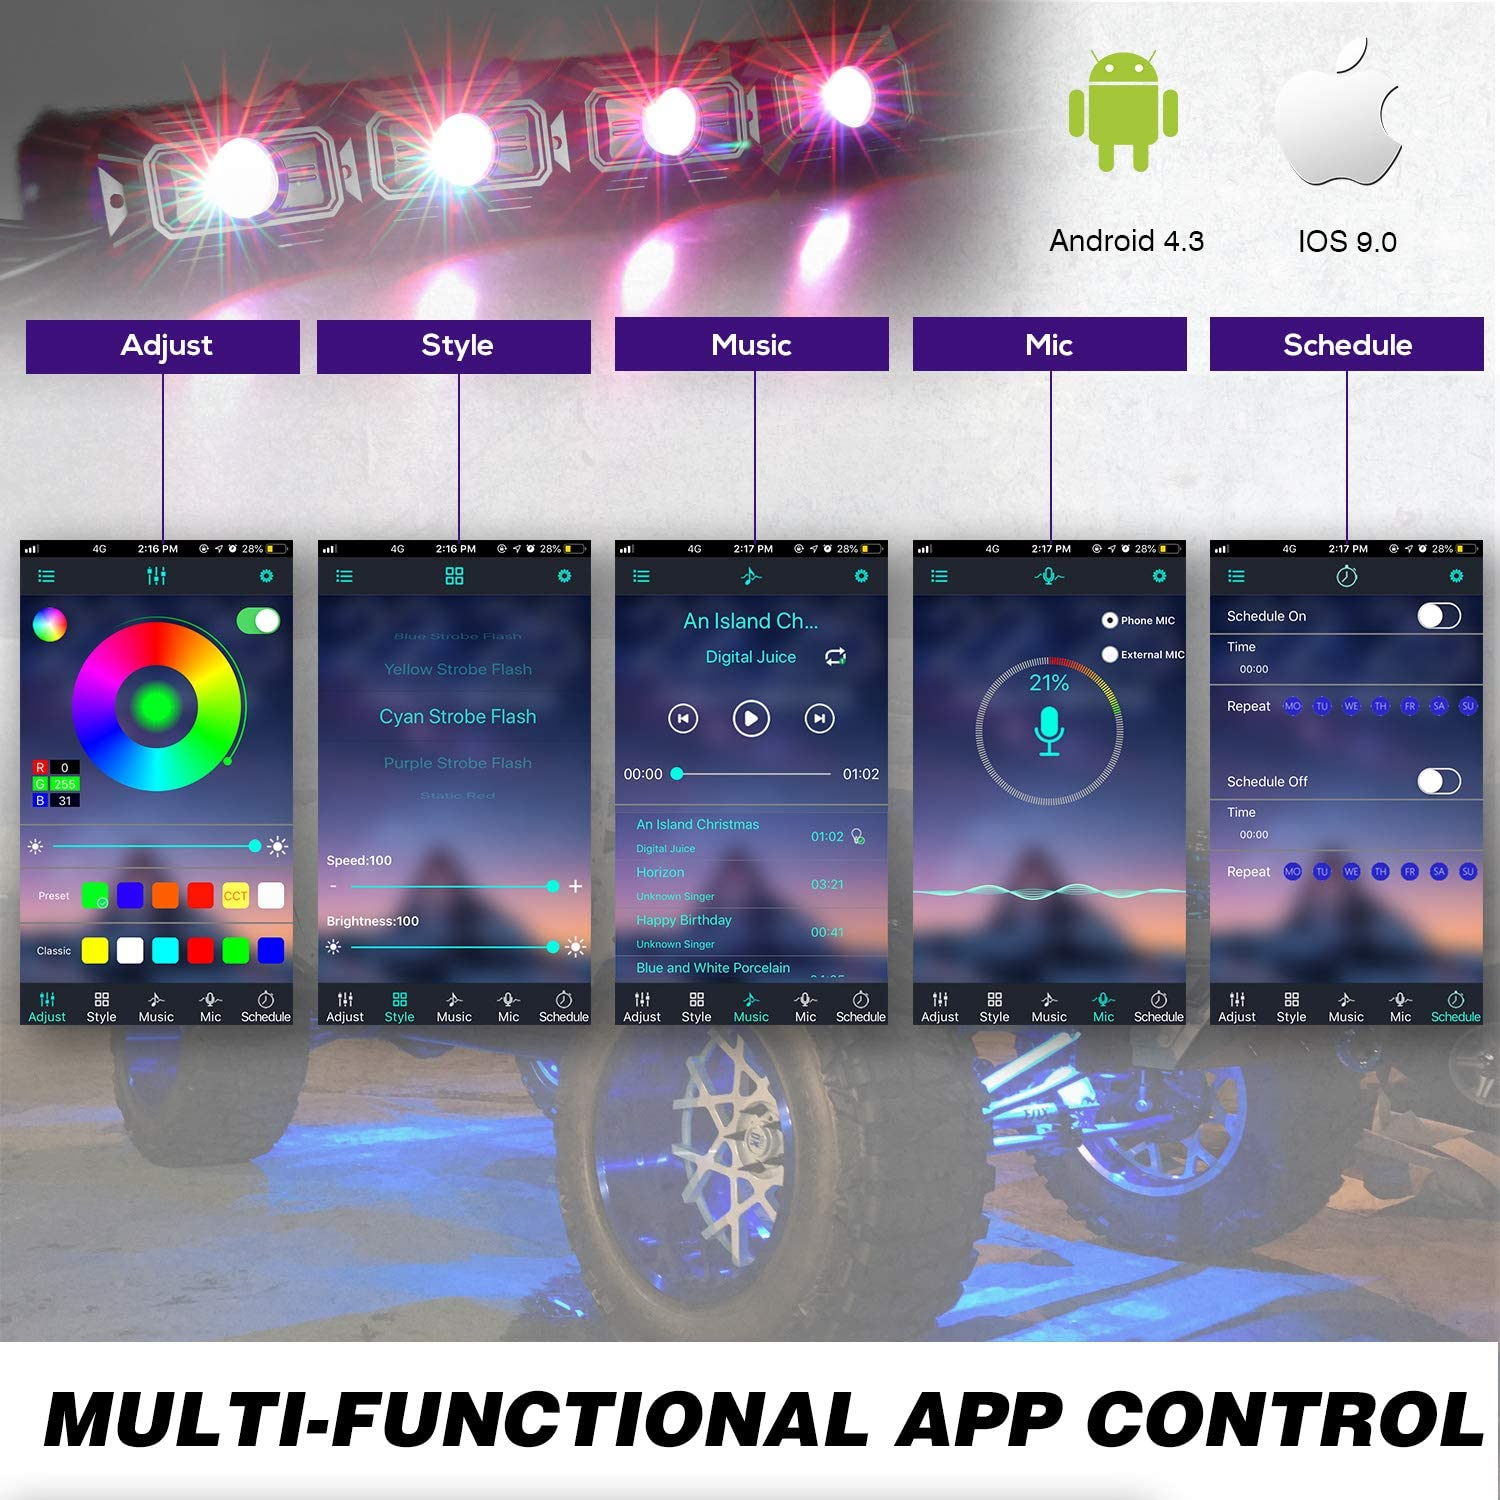 Teochew-LED 4 Pods Wheel Well Lights Underglow Multicolor LED Rock Lights with Music Timing Mode Bluetooth Control Neon Light Kits for RZR ATV Truck Jeep UTV RGB Rock Light Kits